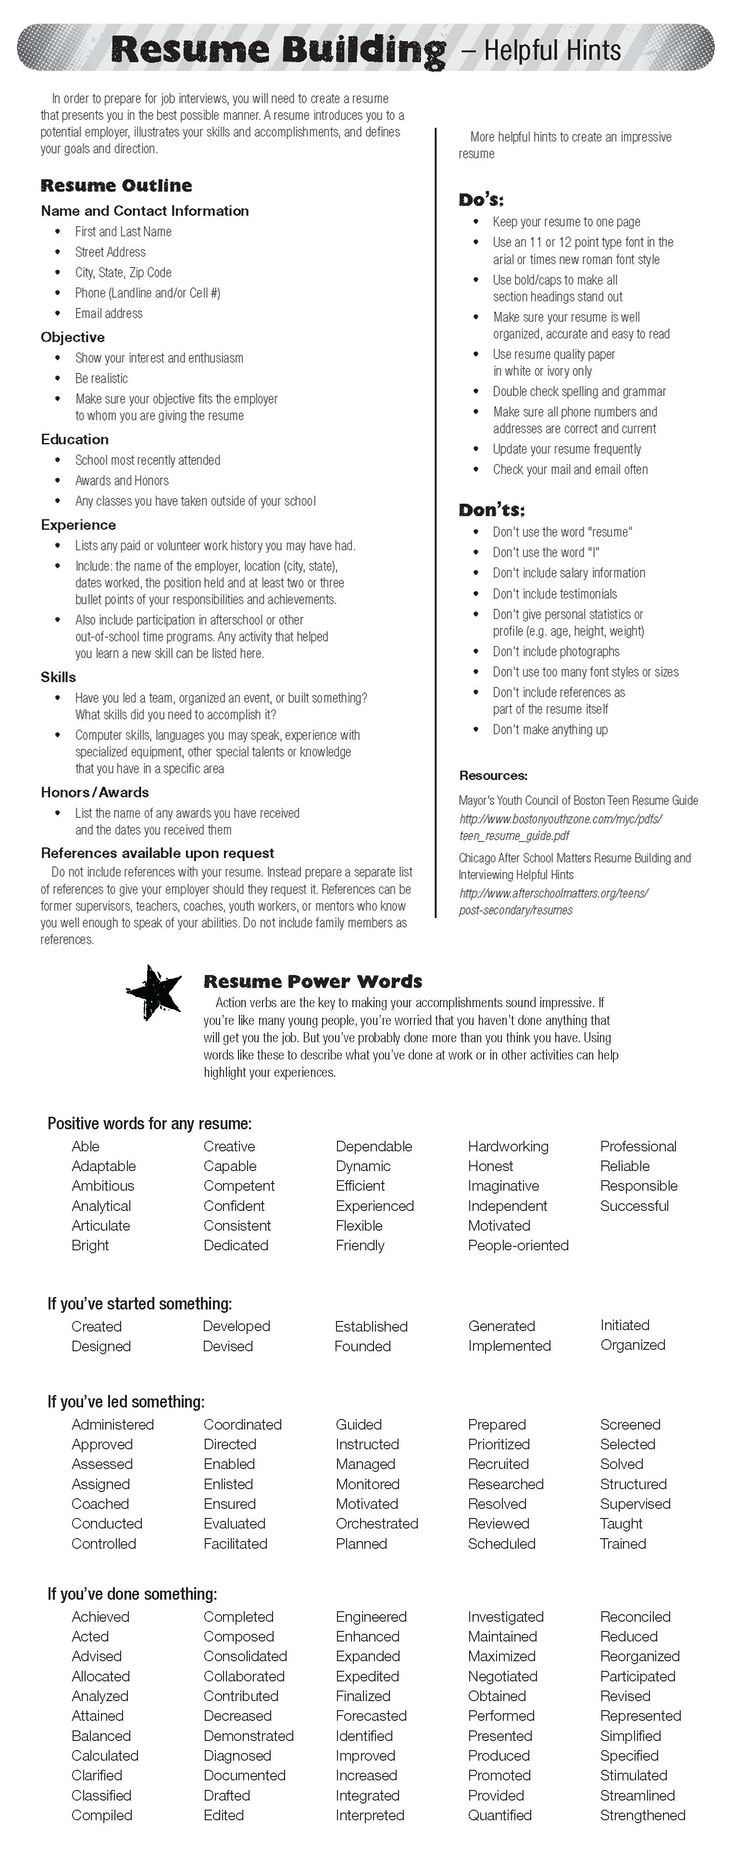 Opposenewapstandardsus  Fascinating  Ideas About Resume On Pinterest  Cv Format Resume Cv And  With Licious  Ideas About Resume On Pinterest  Cv Format Resume Cv And Resume Templates With Adorable Best Words To Use On A Resume Also Ceo Resume Examples In Addition Upload My Resume And Free Resume Bulider As Well As Perfect Resume Builder Additionally Acting Resume Template For Microsoft Word From Pinterestcom With Opposenewapstandardsus  Licious  Ideas About Resume On Pinterest  Cv Format Resume Cv And  With Adorable  Ideas About Resume On Pinterest  Cv Format Resume Cv And Resume Templates And Fascinating Best Words To Use On A Resume Also Ceo Resume Examples In Addition Upload My Resume From Pinterestcom